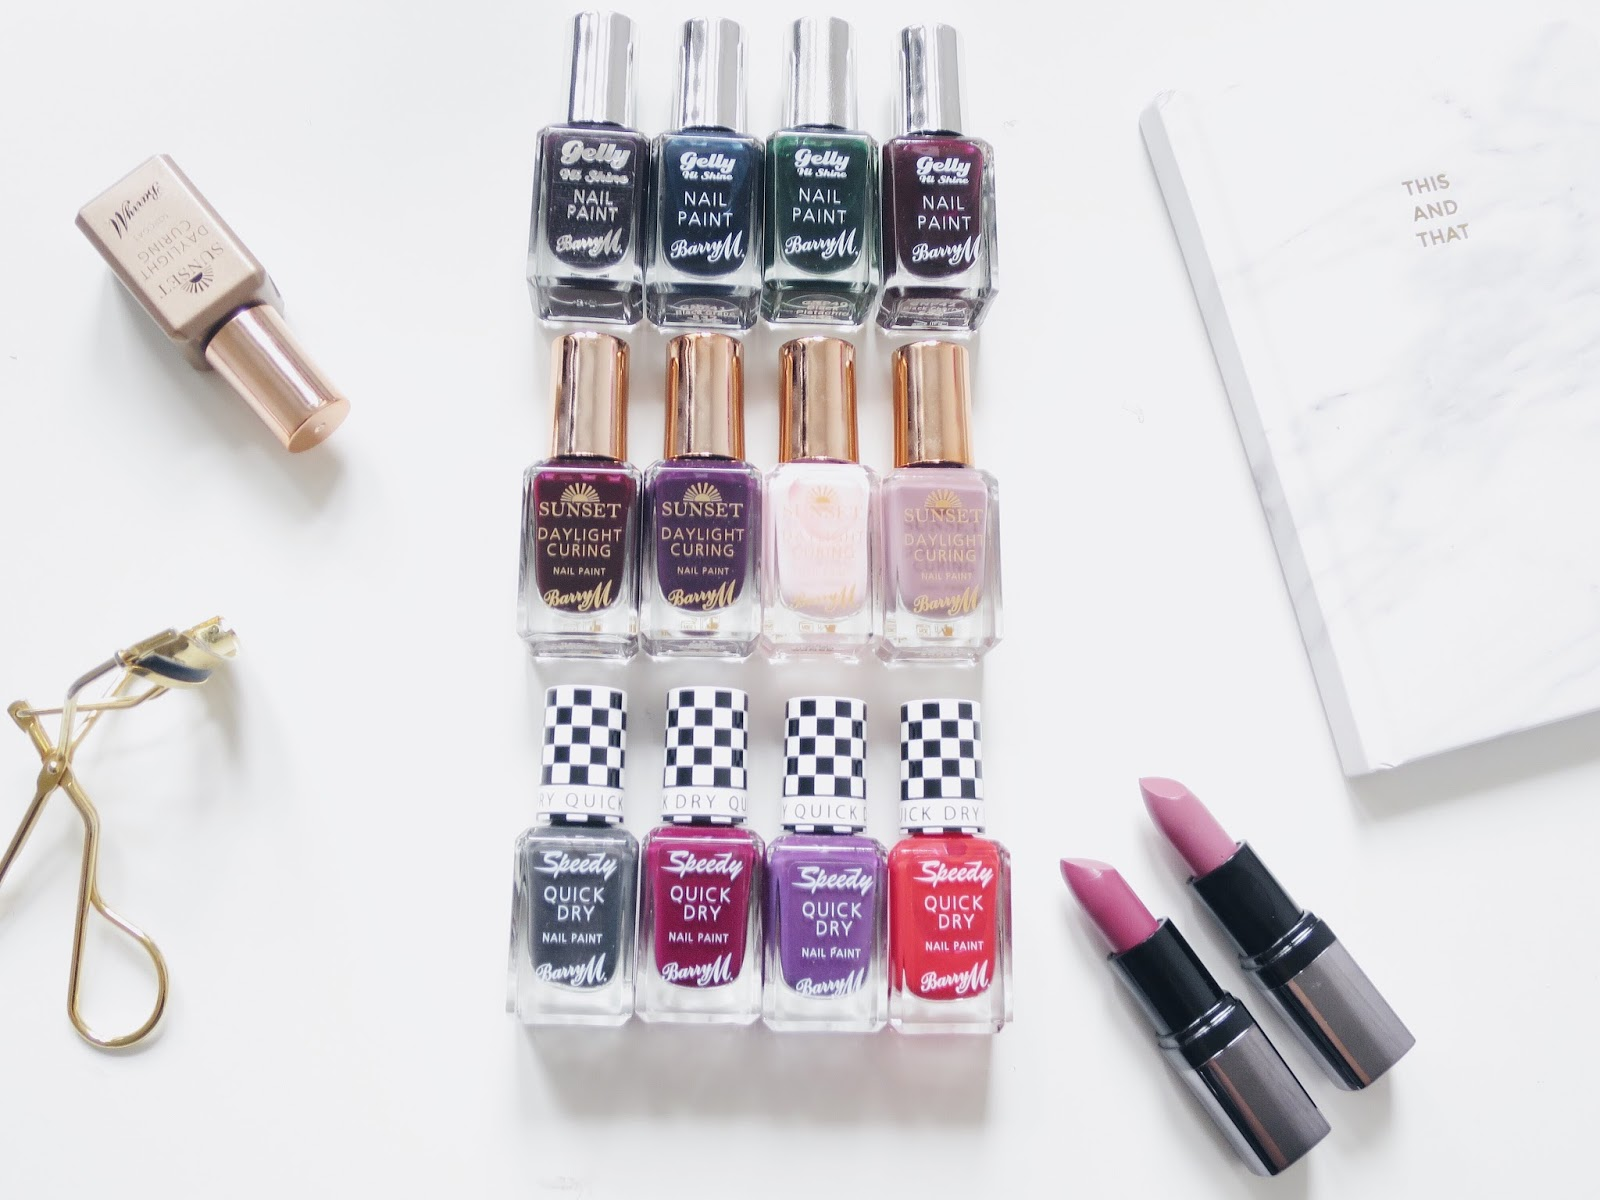 Beauty, Barry M, Barry M A/W Launches, Barry M New products, Barry M 2015, Nails, A/W beauty, make up, Drugstore,